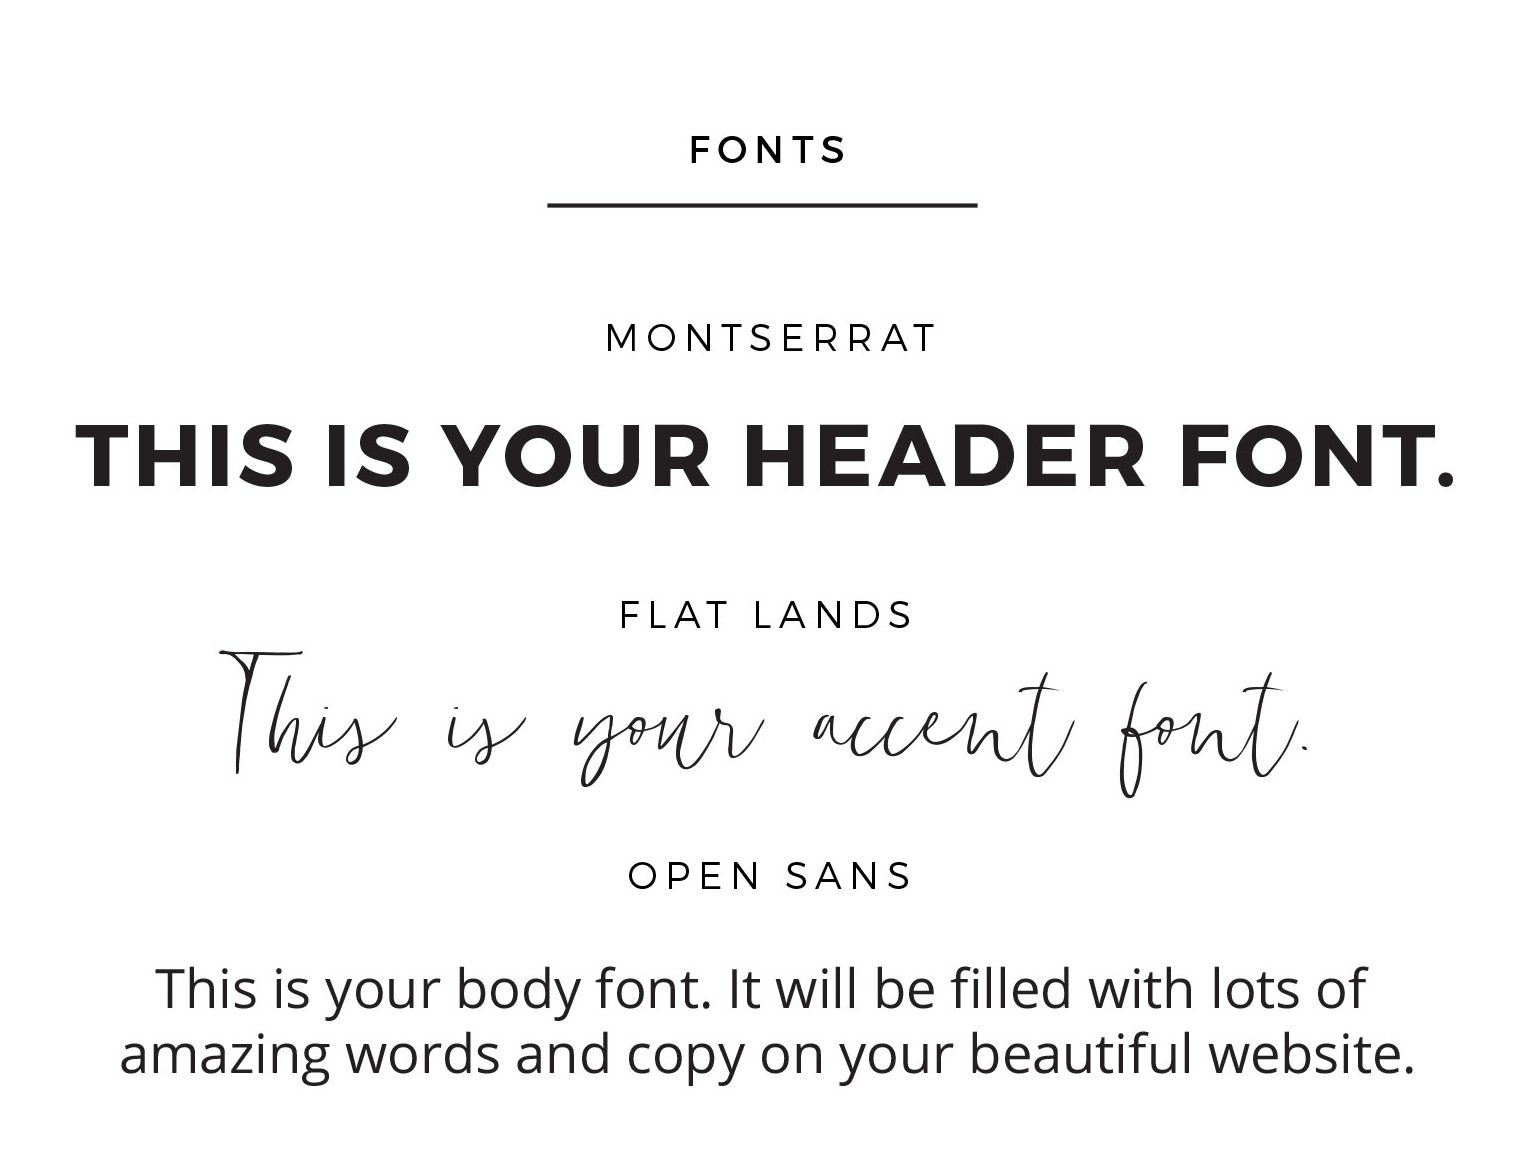 Font Pairings For Your Brand